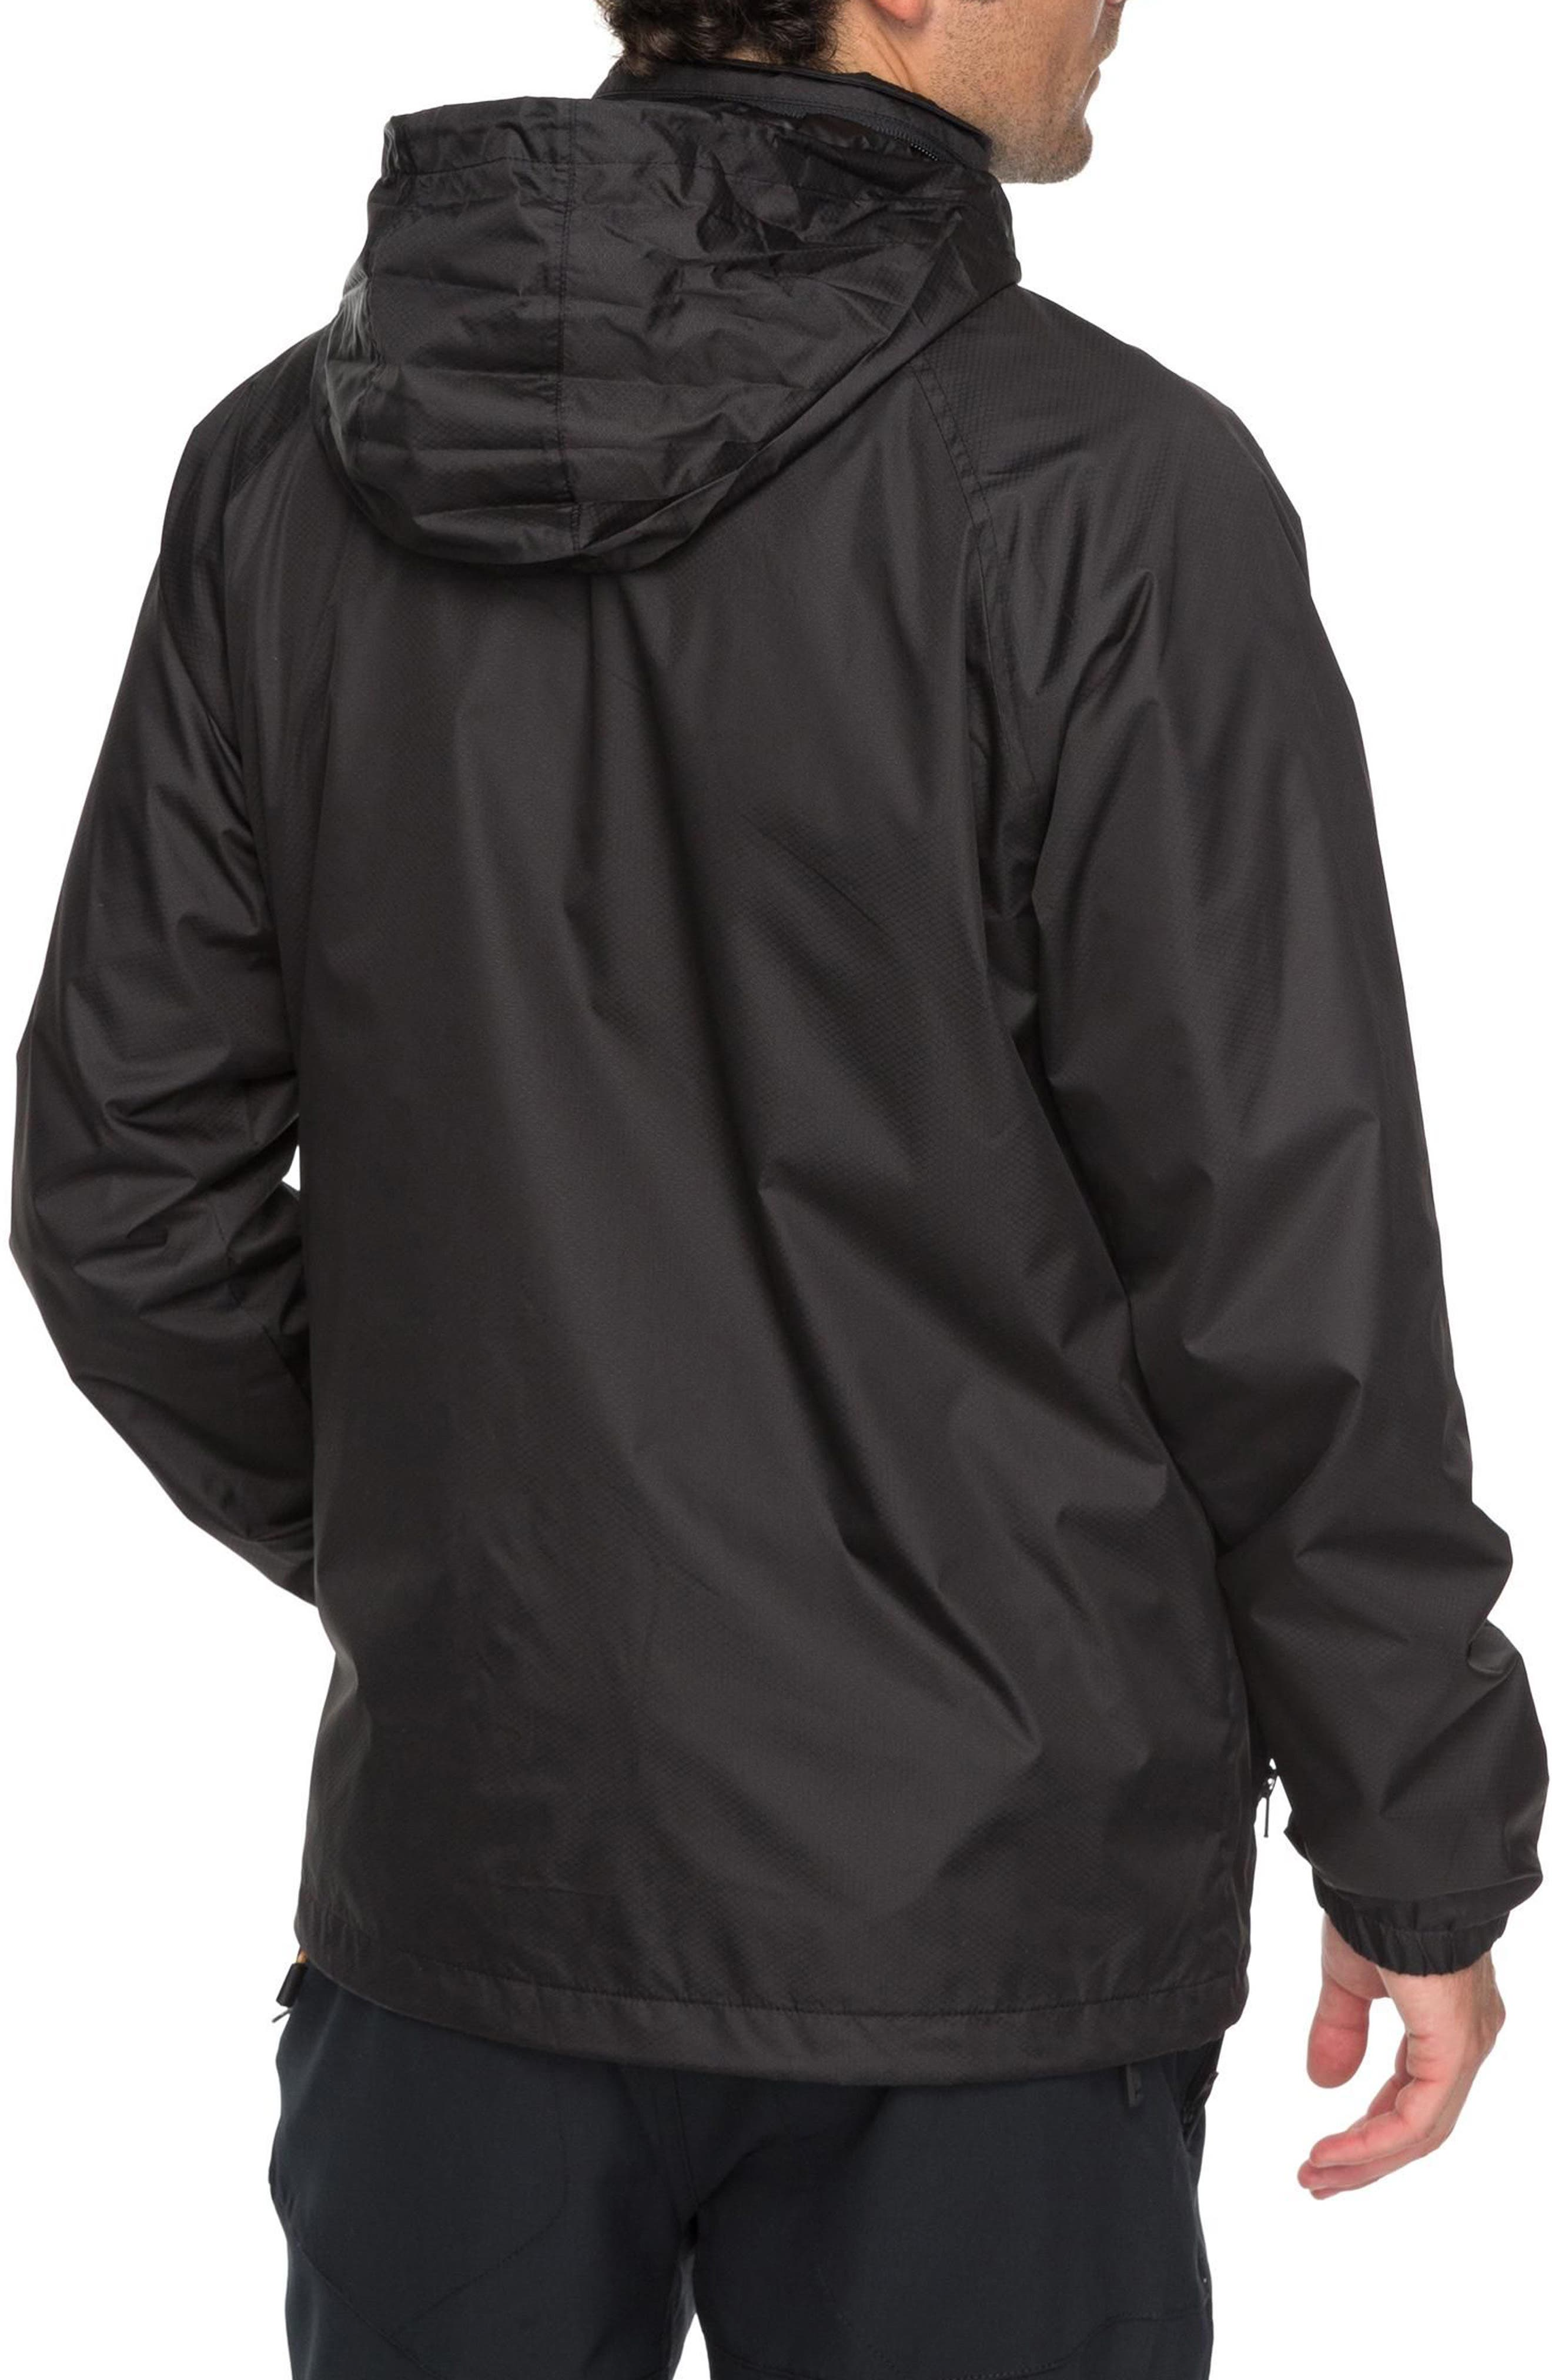 Shell Shock Water Repellent Windbreaker,                             Alternate thumbnail 2, color,                             002